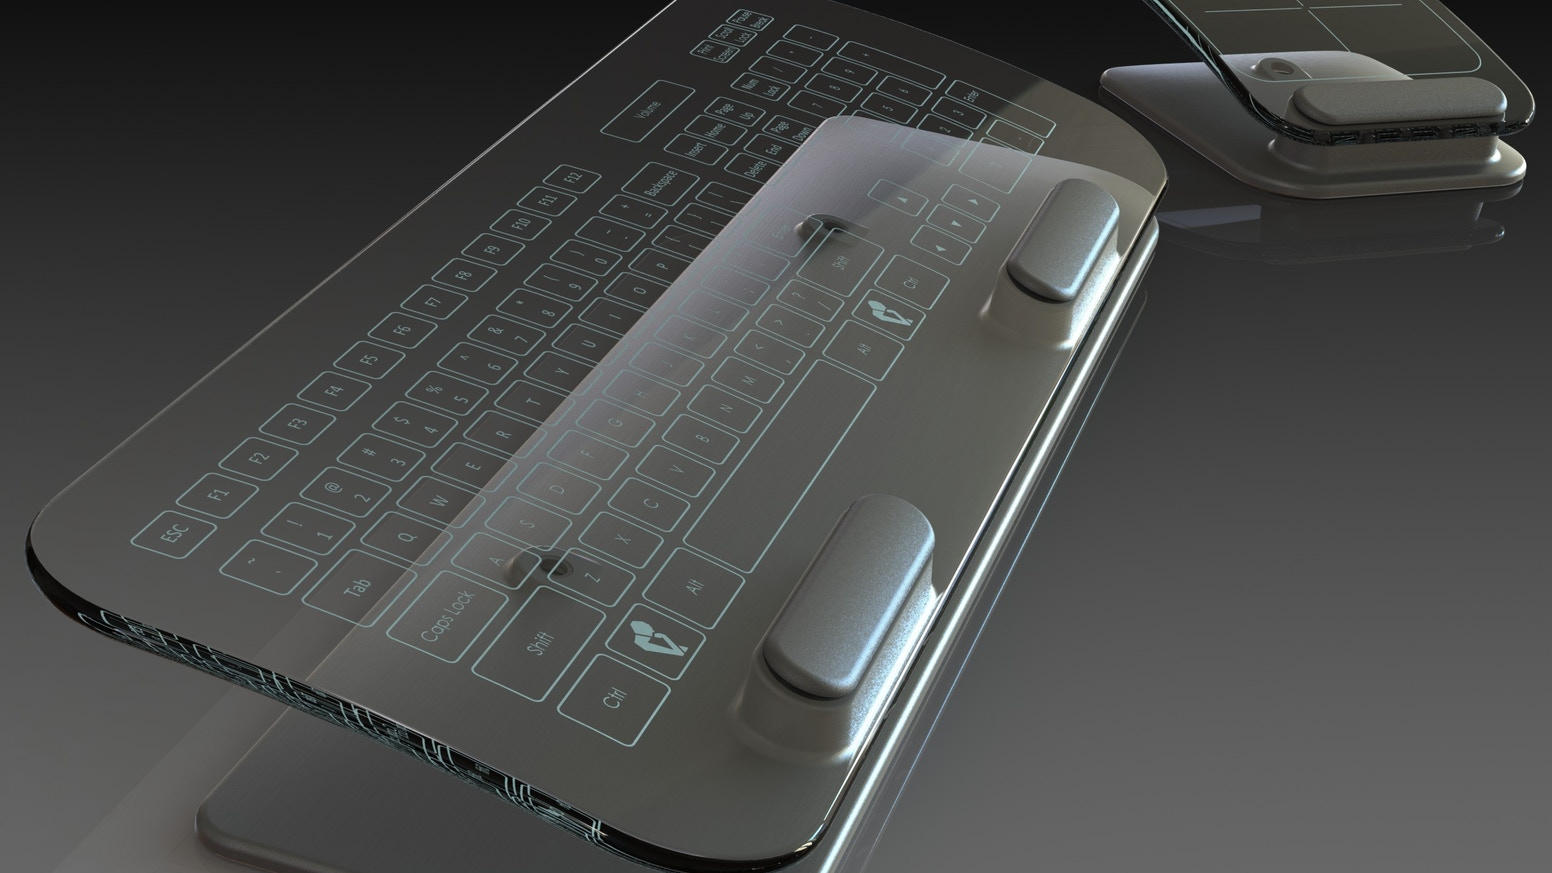 Multi-Touch Keyboard and Mouse by Jason Giddings (deleted